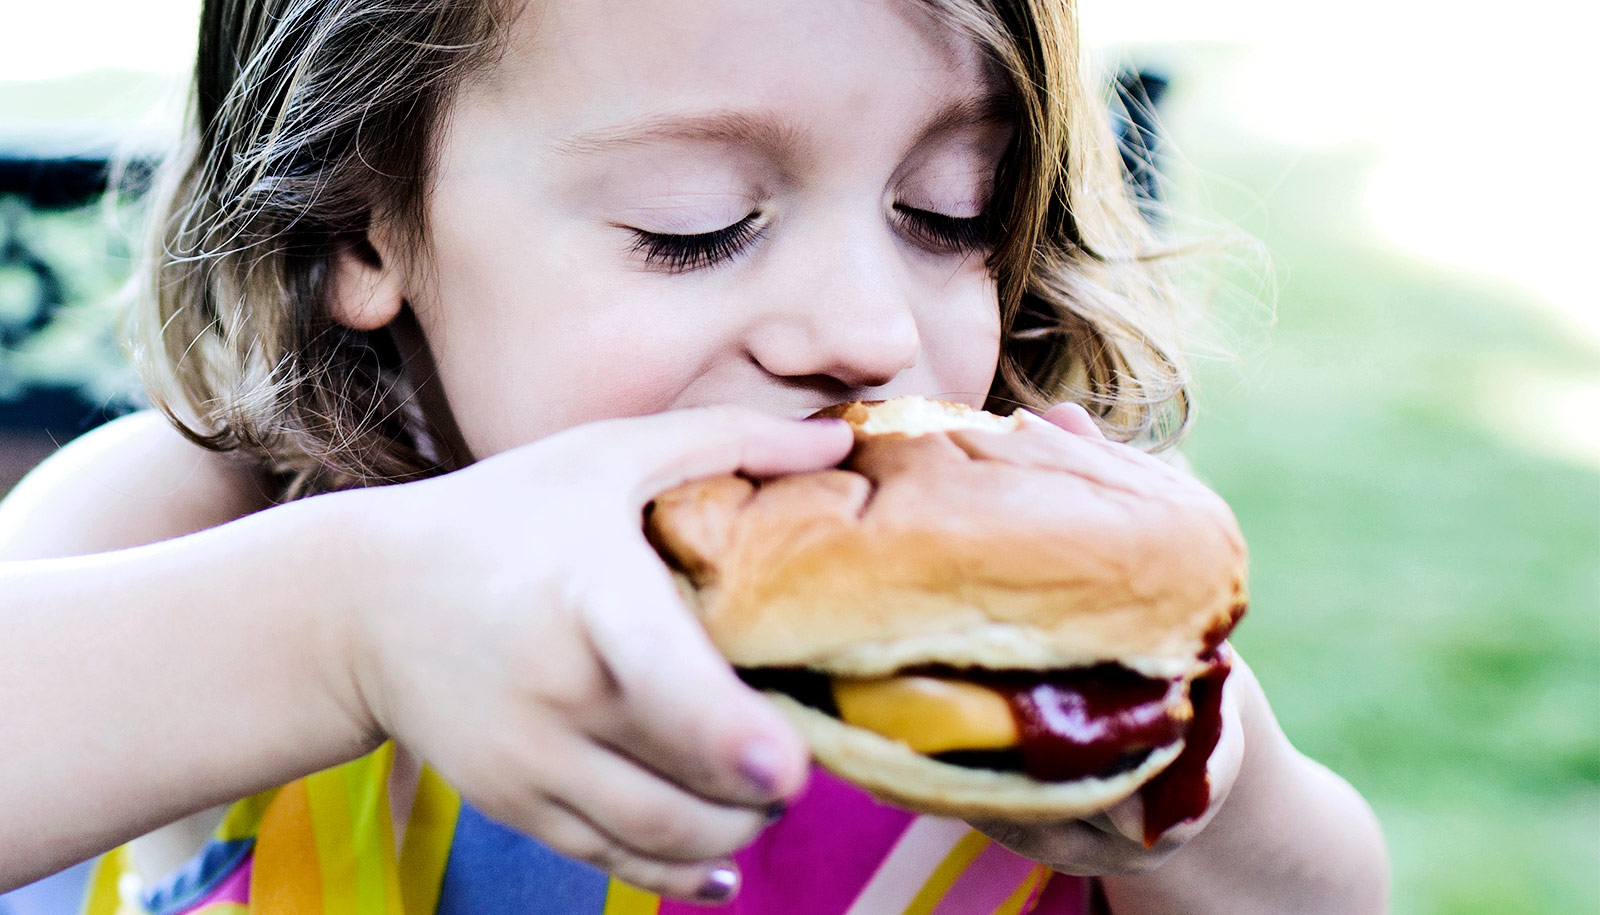 Bigger food portions make preschoolers overeat